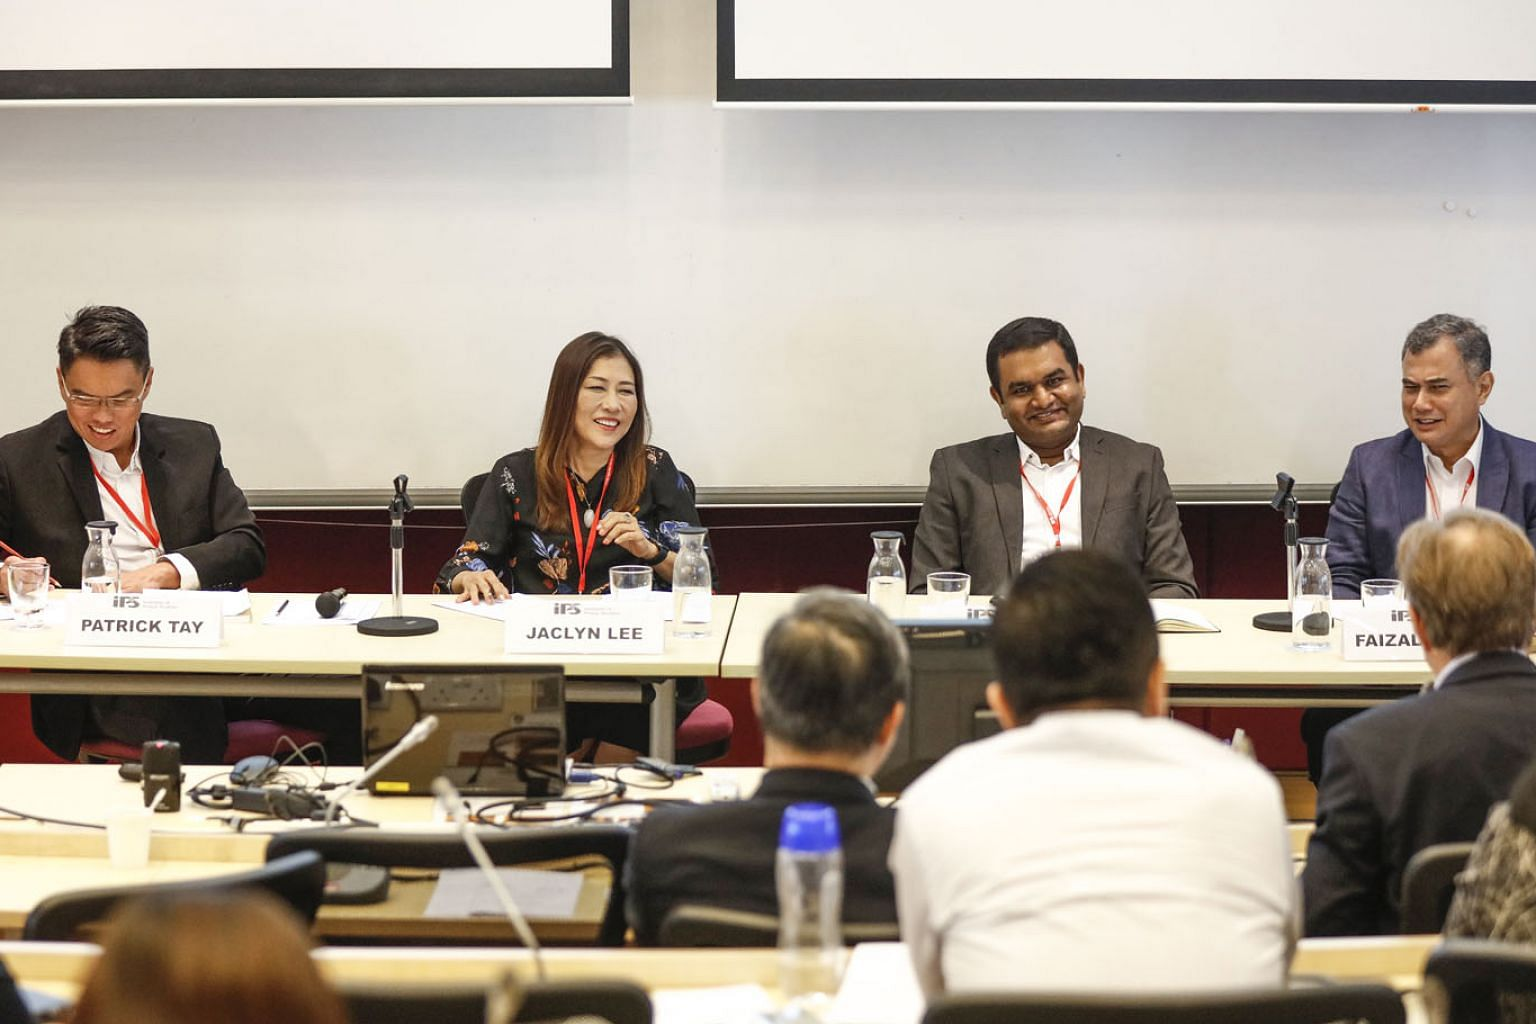 (From left) NTUC assistant secretary-general Patrick Tay; Singapore University of Technology and Design chief human resources officer Jaclyn Lee; PwC director of intelligent automation Abhijit Chavan; and Institute of Policy Studies senior research f